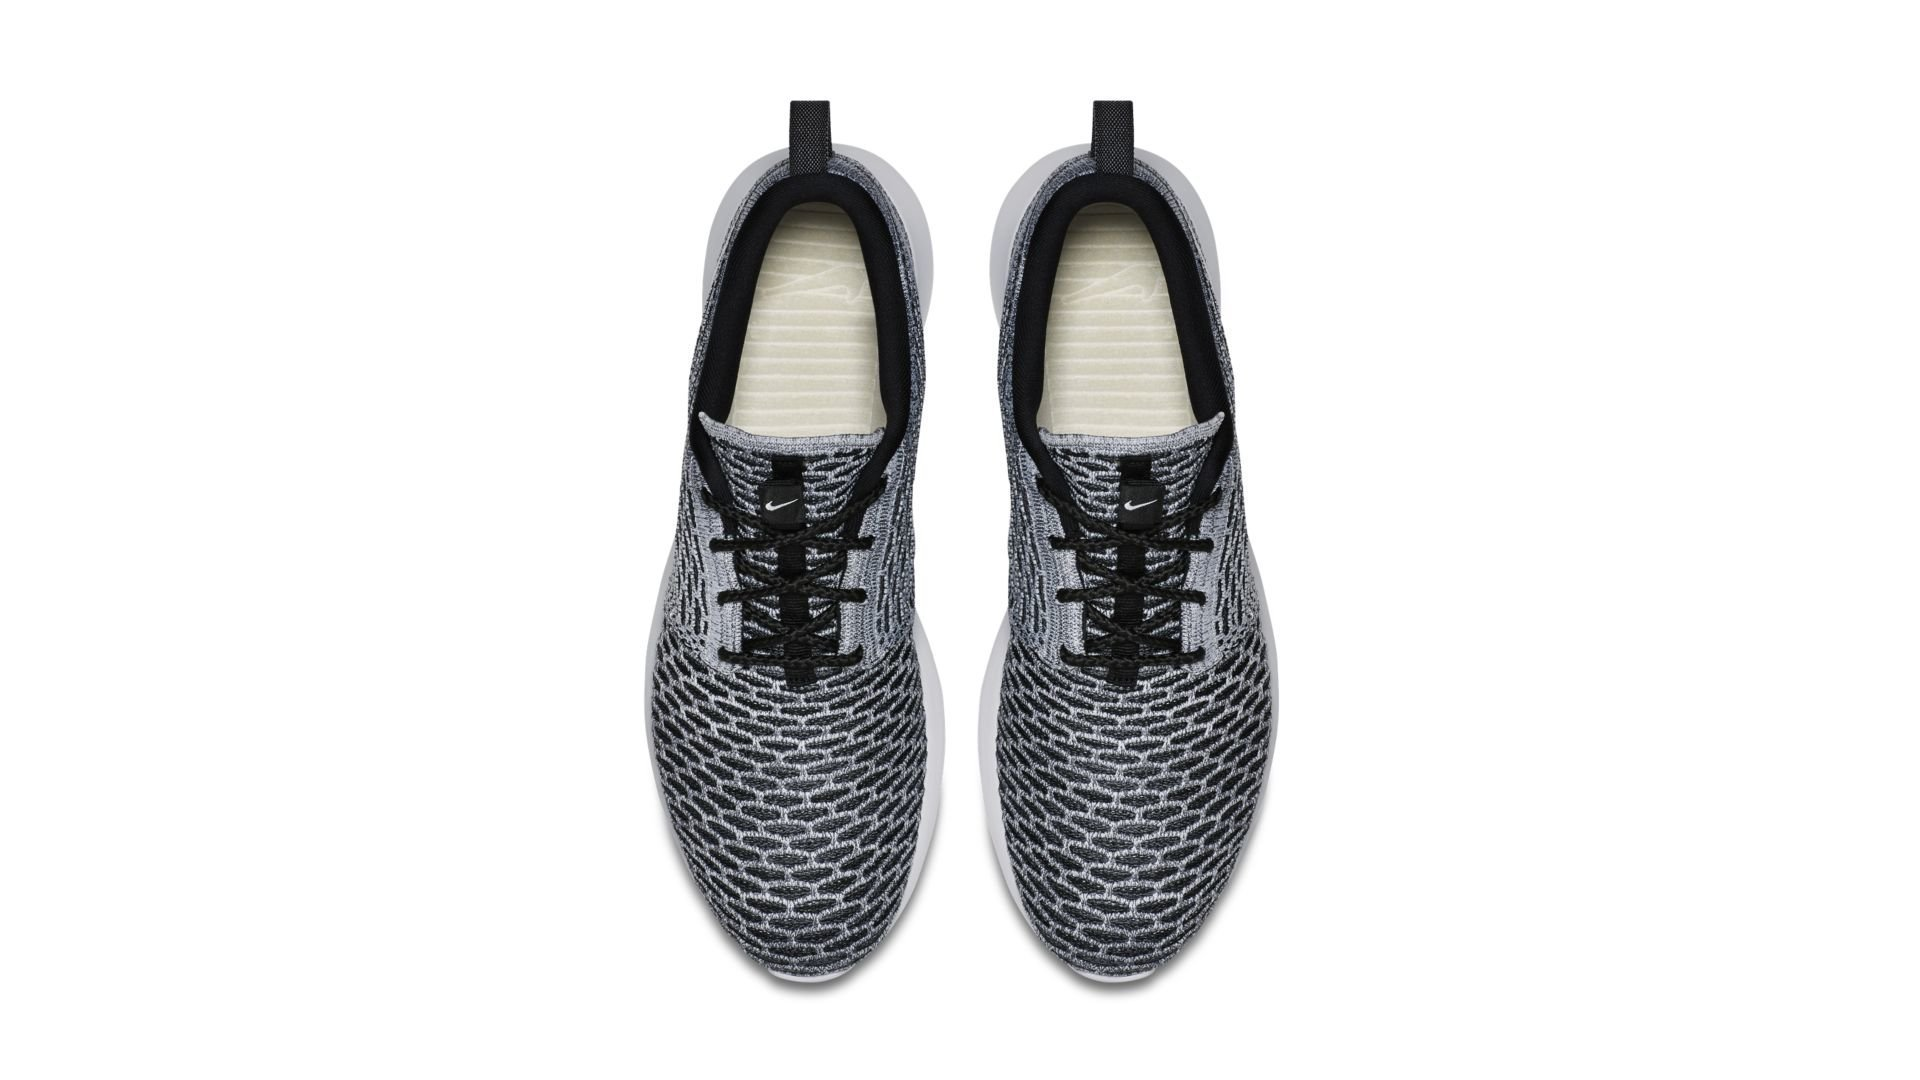 Nike Roshe Run Flyknit Black White (677243-008)